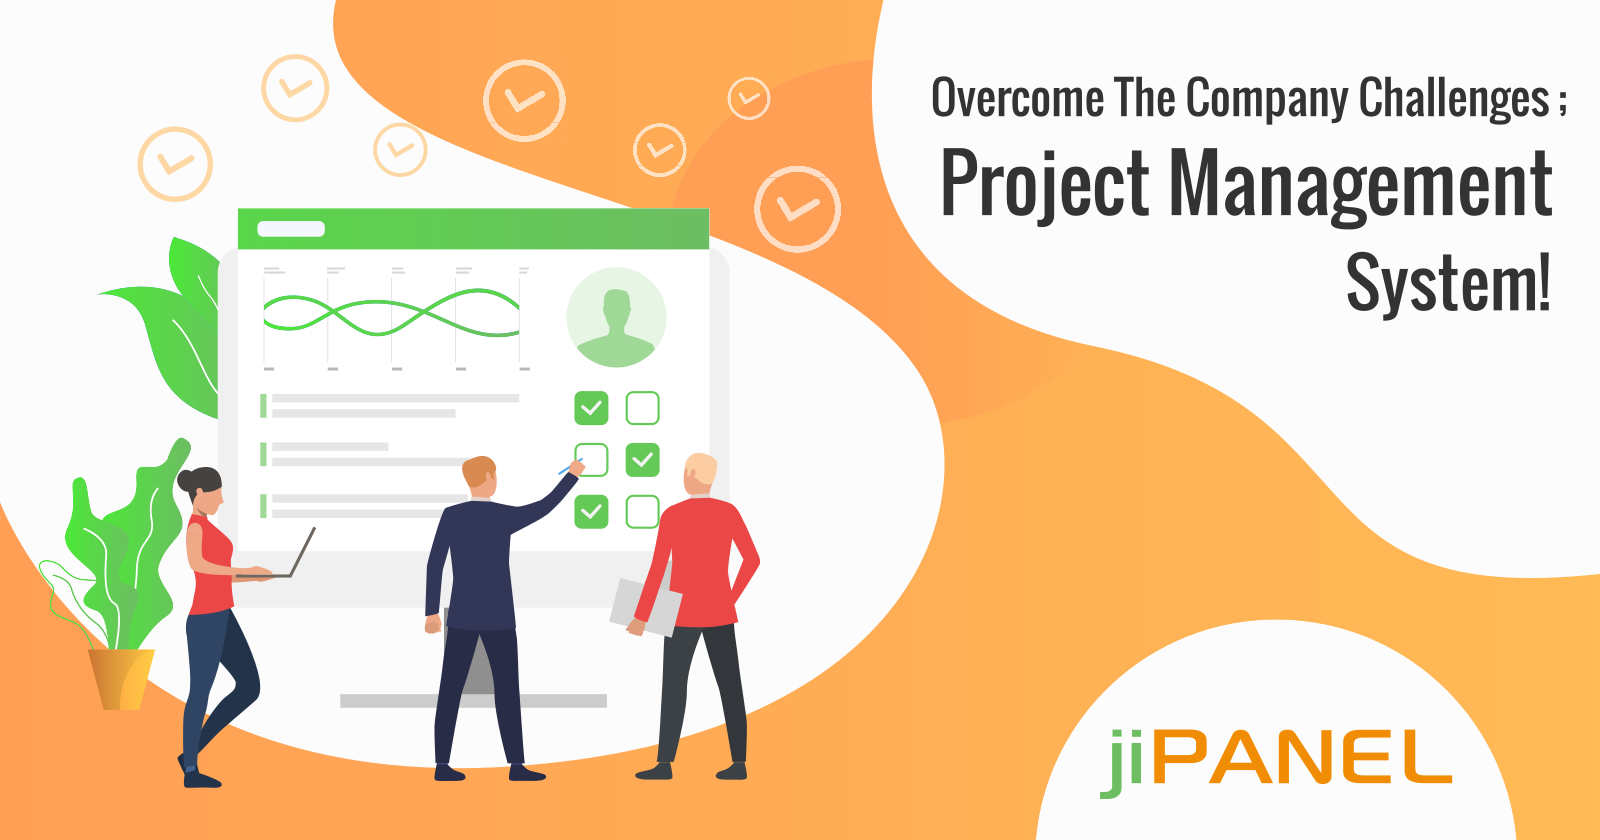 Overcome The Company Challenges; Project Management System!